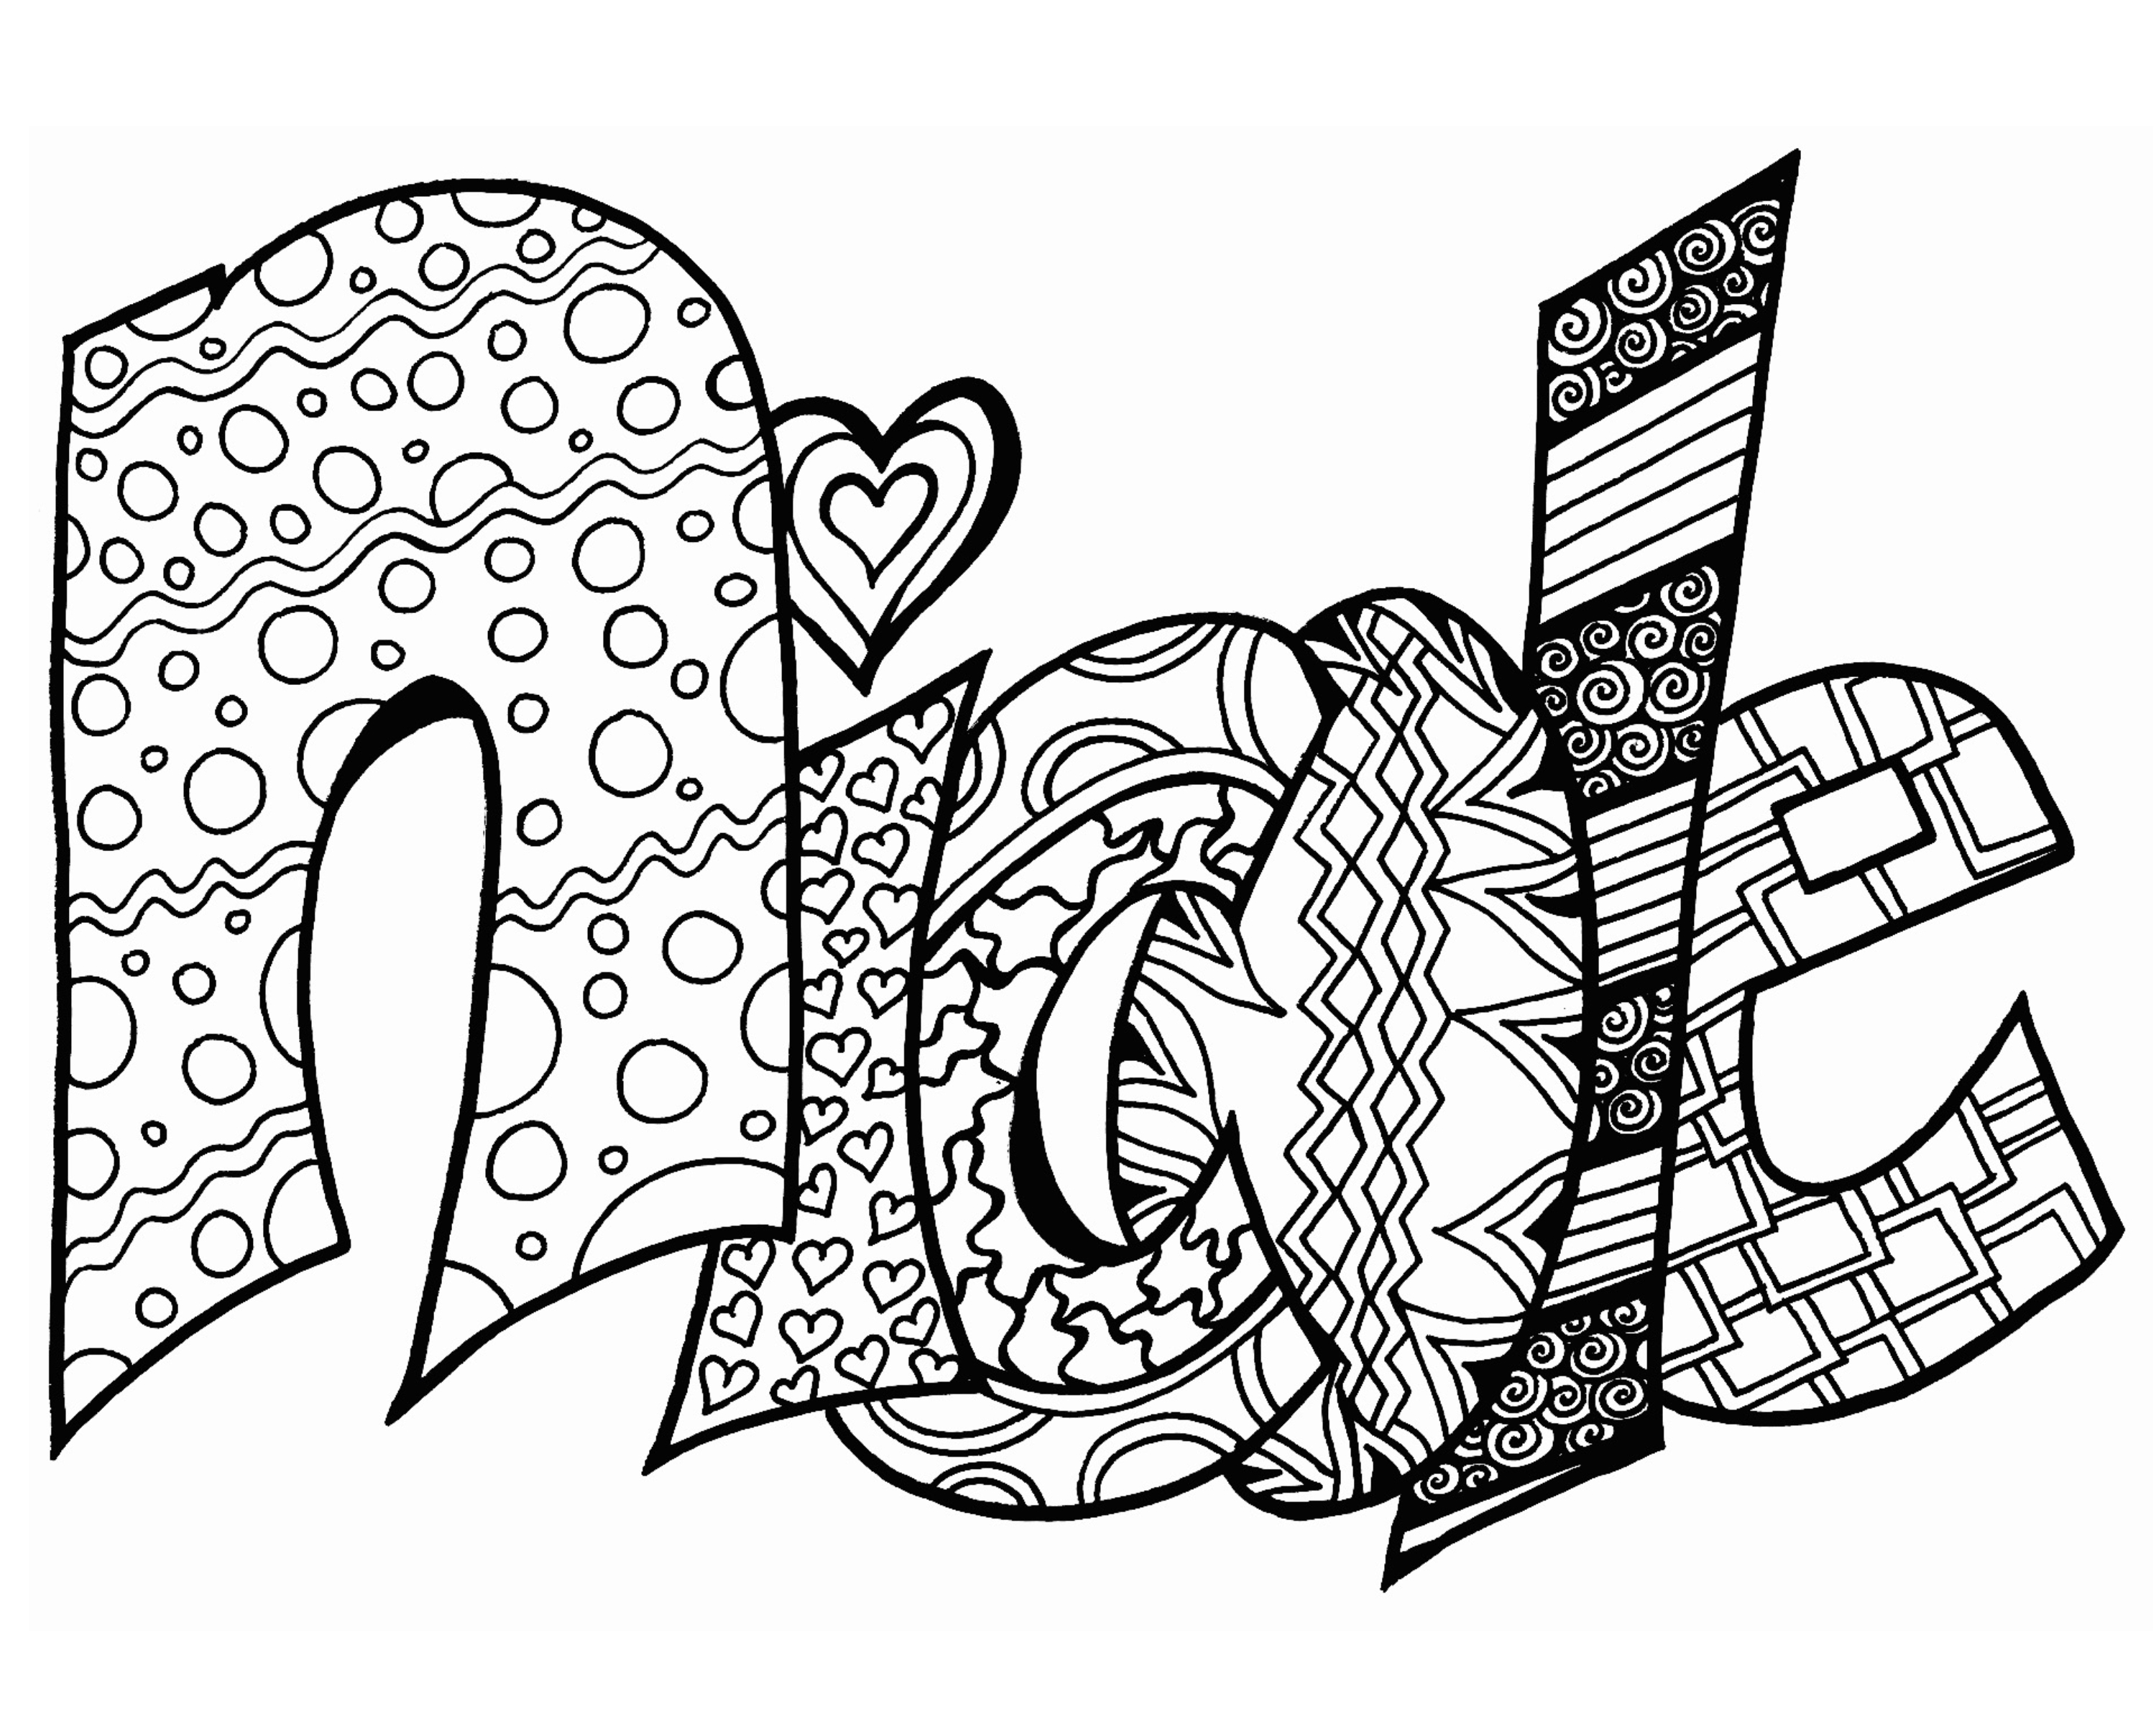 Graffiti names nicole coloring pages coloring pages for Names coloring pages